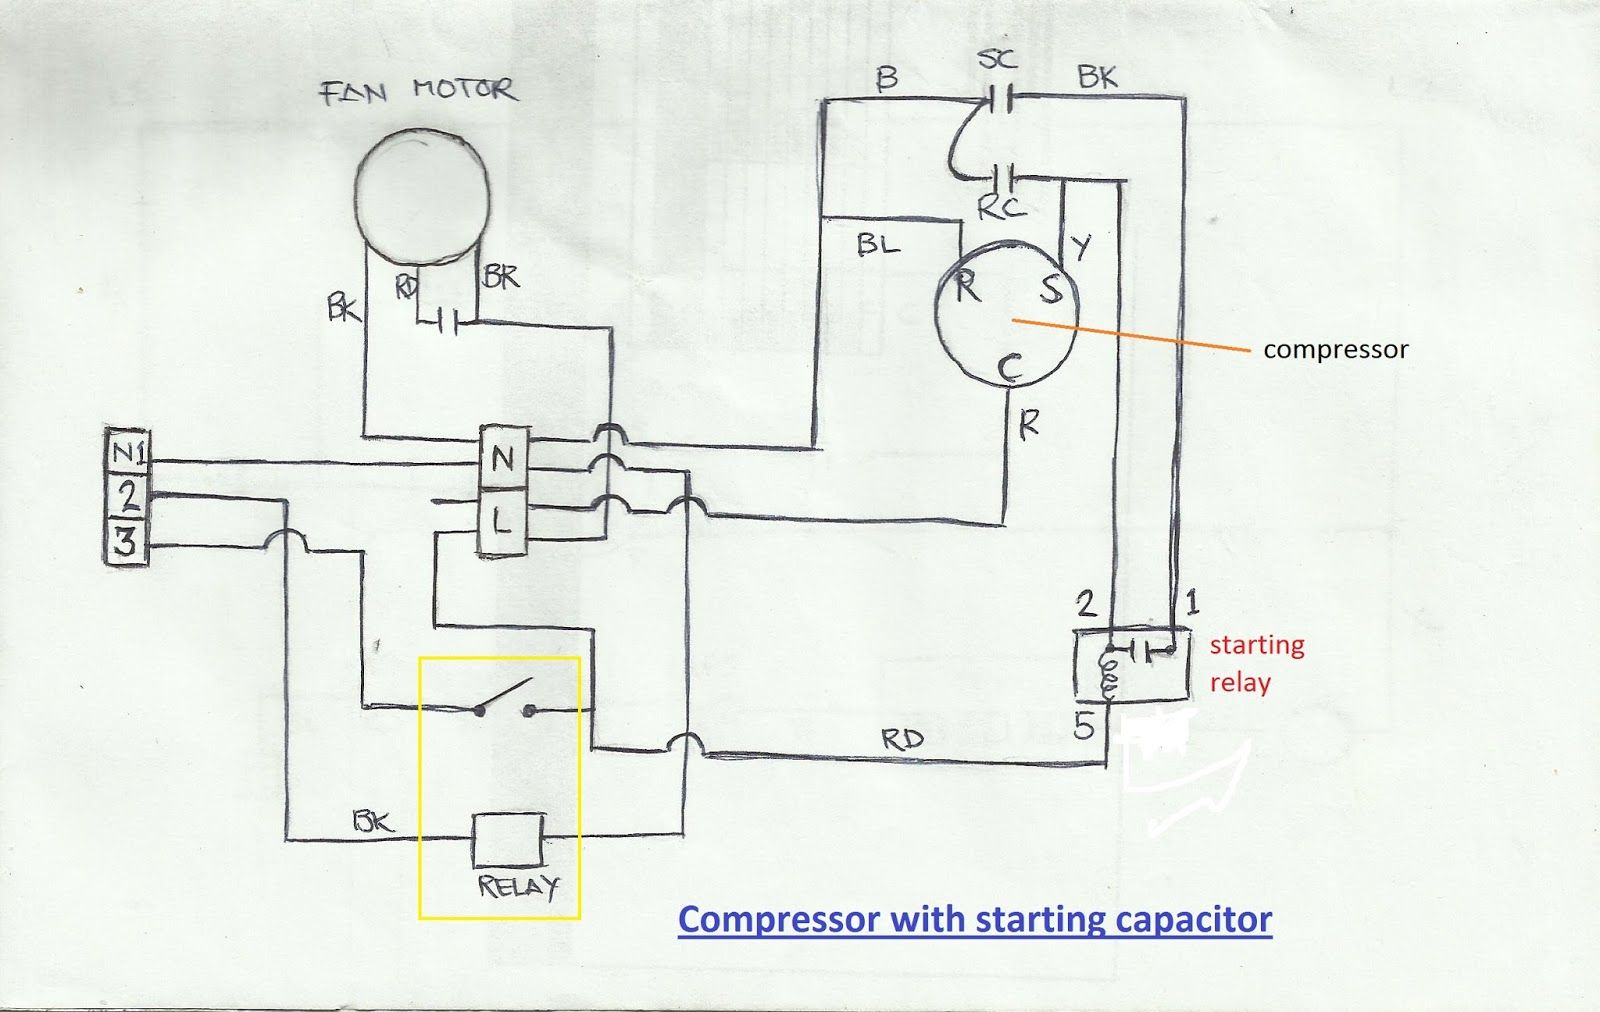 Refrigeration And Air Conditioning Repair Wiring Diagram Of ... on sears wiring diagram, sub zero refrigerator wiring diagram, kenmore schematic diagram, frigidaire refrigerator wiring diagram, viking refrigerator wiring diagram, kenmore pro refrigerator manual, traulsen refrigerator wiring diagram, ge refrigerator wiring diagram, ge profile refrigerator parts diagram, freezer wiring diagram, kenmore refrigerator screw, kenmore refrigerator disassembly, kenmore refrigerator ice maker connections, kenmore refrigerator transformer, whirlpool refrigerator ice maker parts diagram, fans wiring diagram, kenmore refrigerator not cooling, samsung refrigerator ice maker parts diagram, maytag refrigerator wiring diagram, kenmore refrigerator replacement parts,